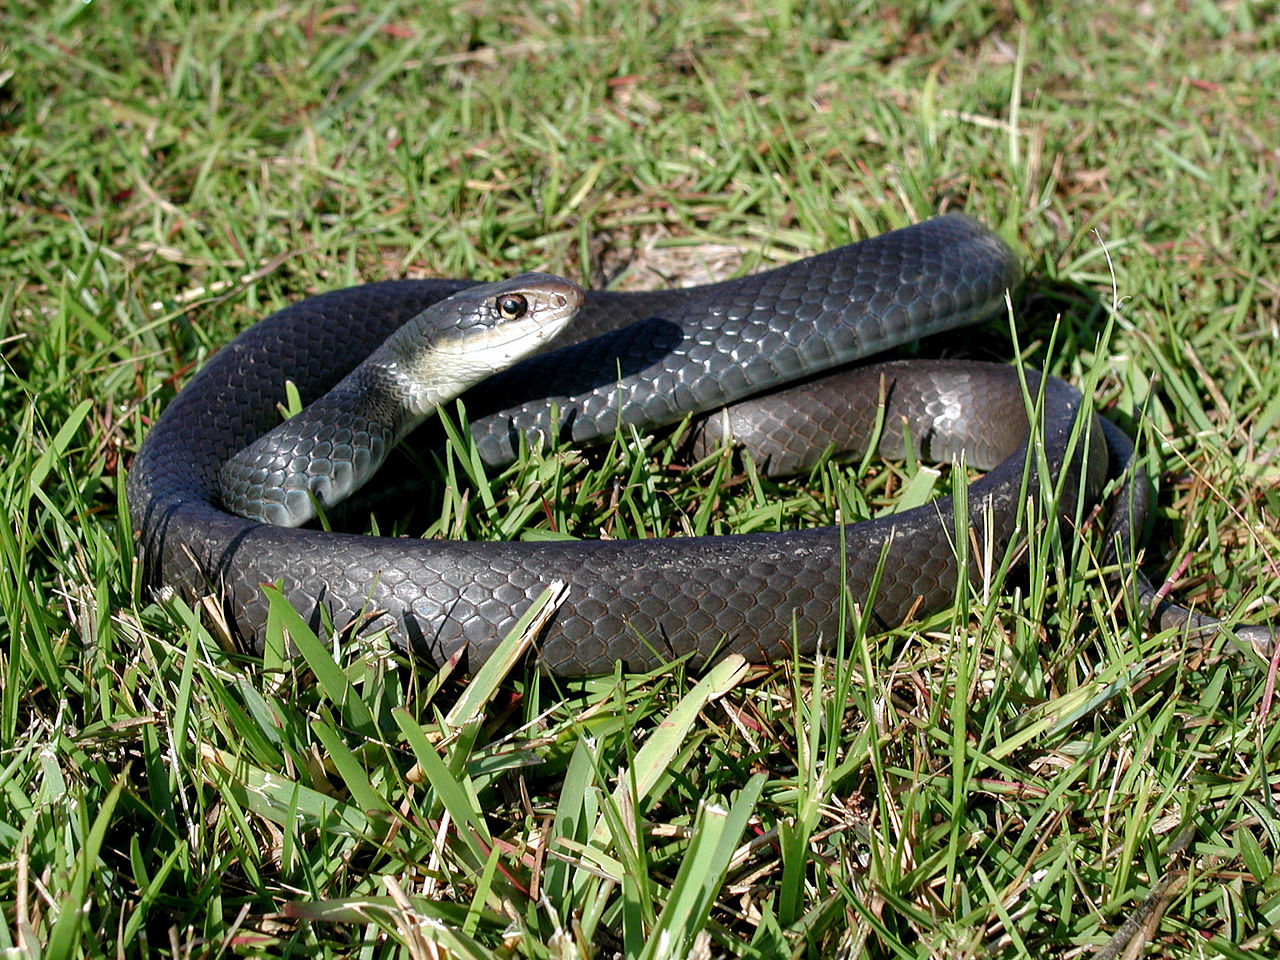 Southern Black Racer Snake In Grass One Of Floridas Non Venomous Snakes